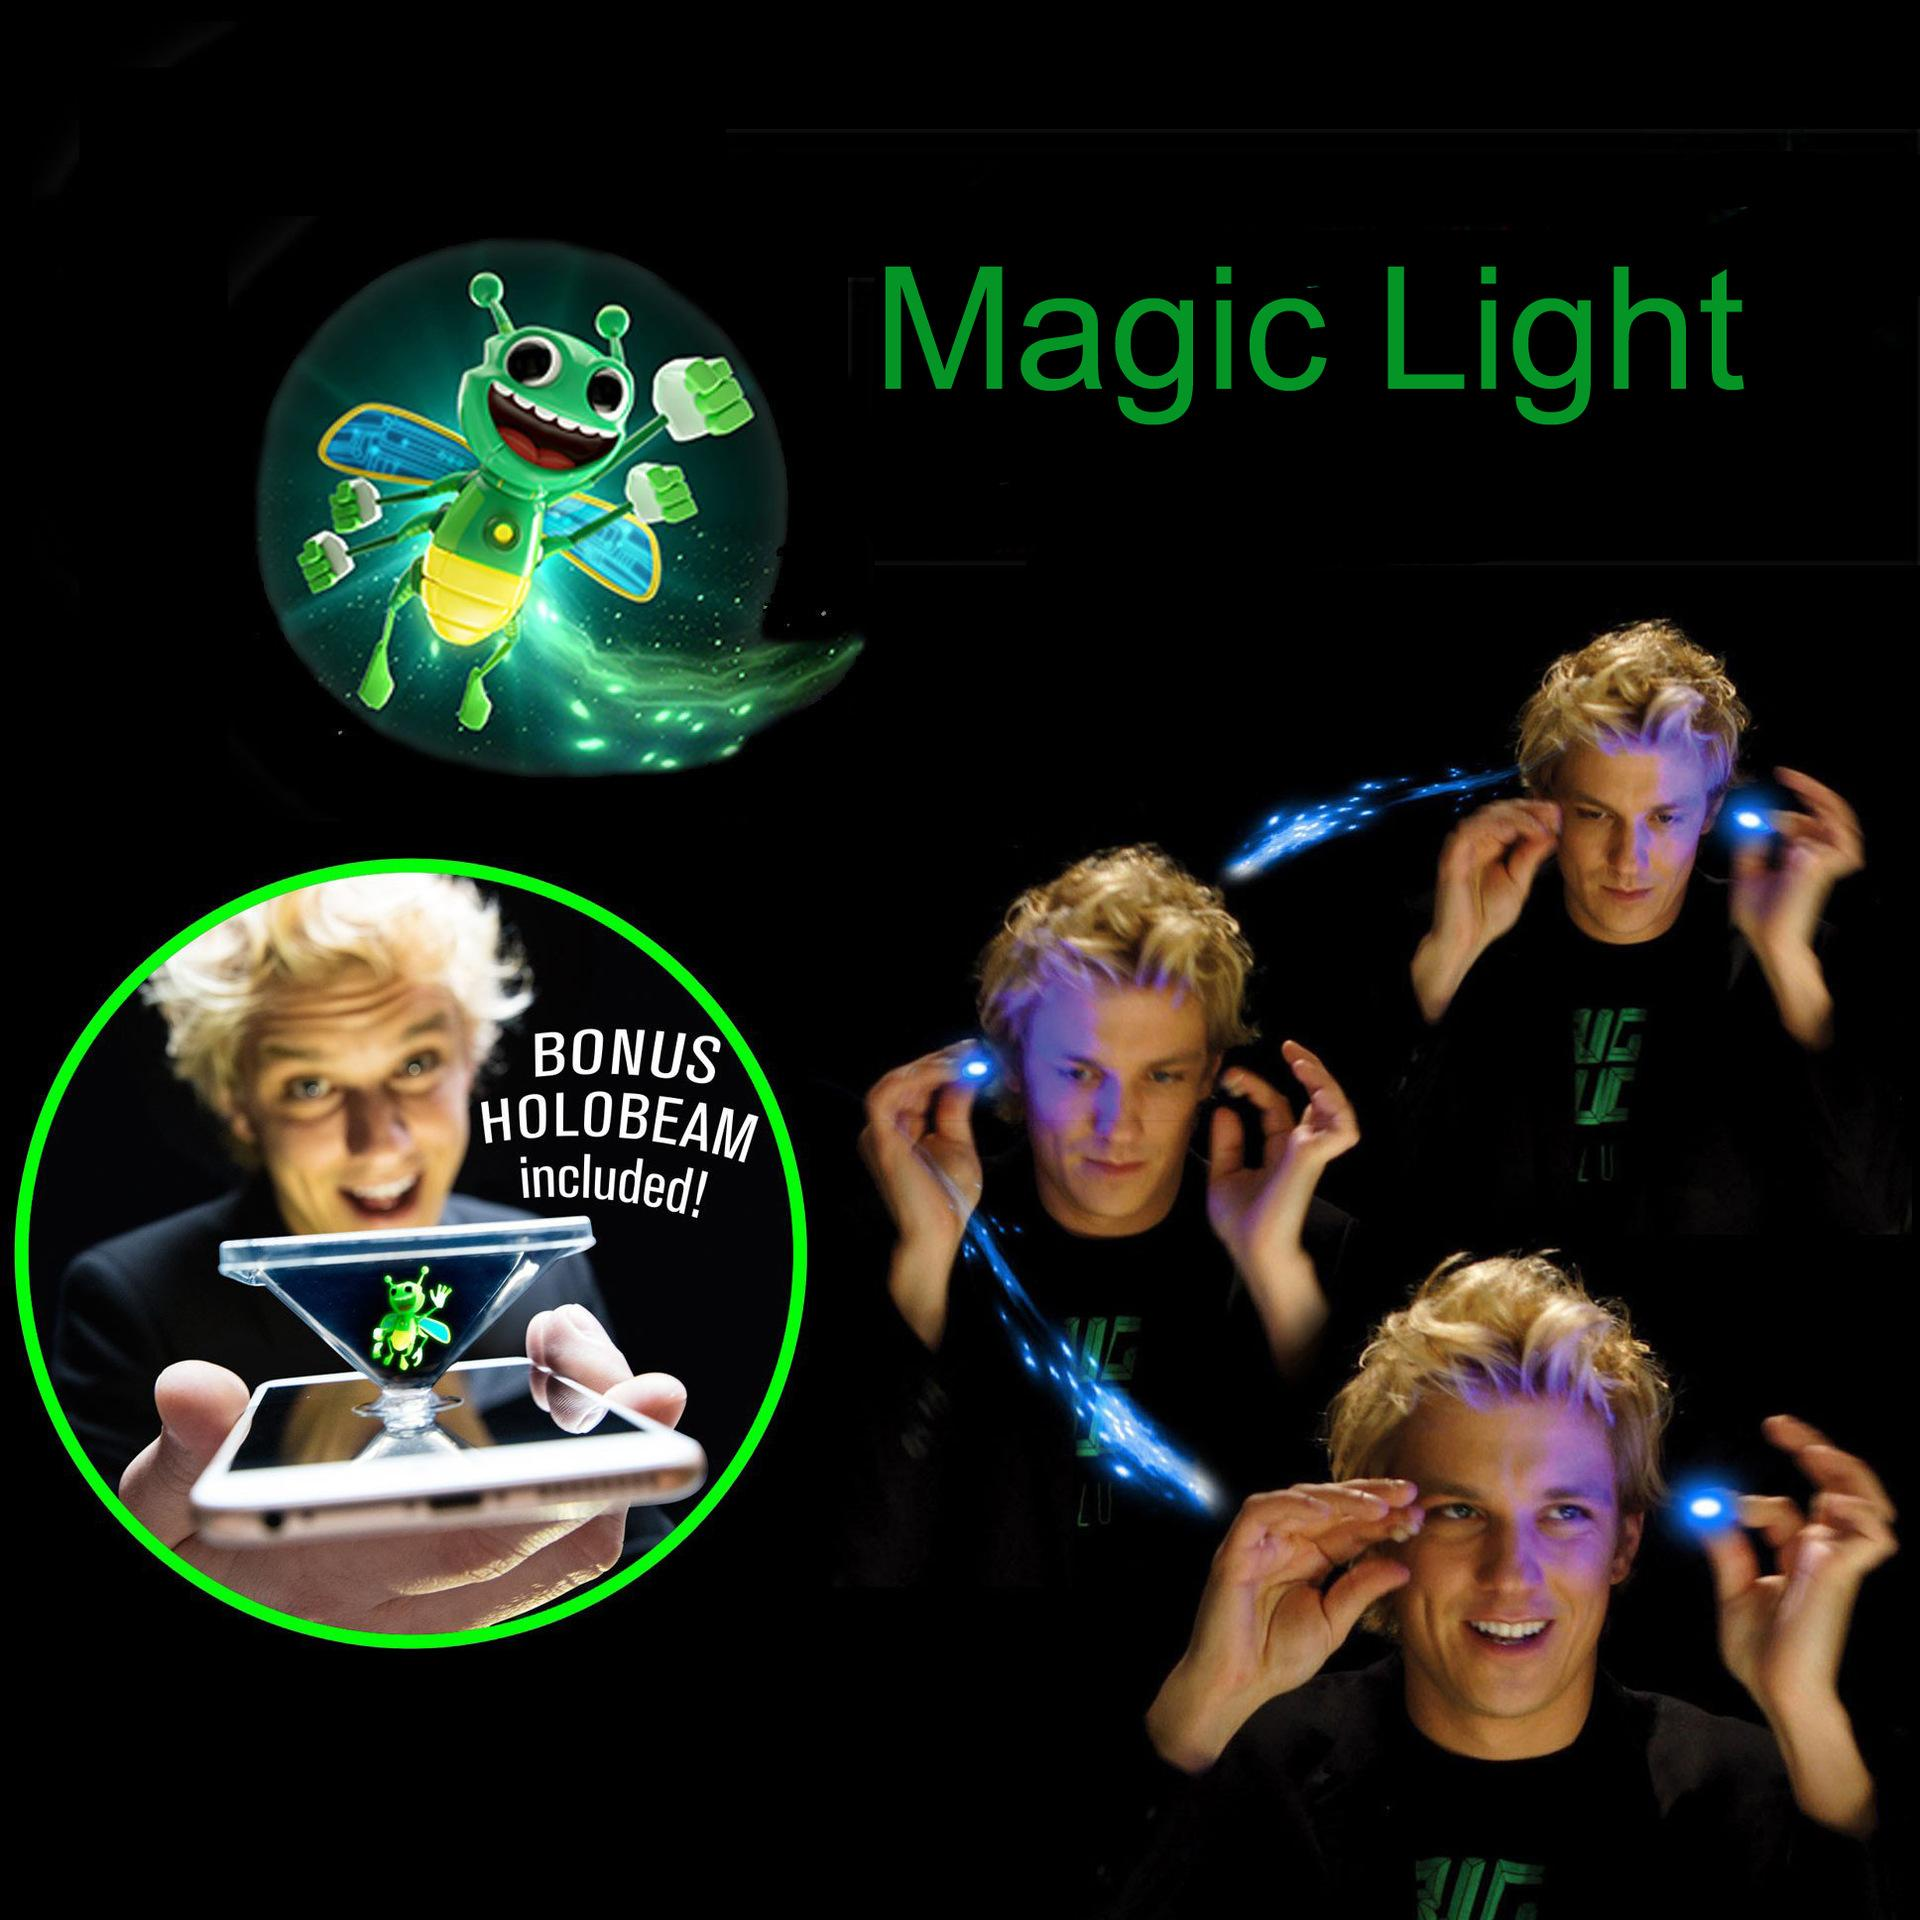 Bright Bugz Magic Lights 3D Bees Light-up Toys Lamp Kit Novelty Gay Trick Toys Magical Glow In The Dark Light Sticks Kids Gifts